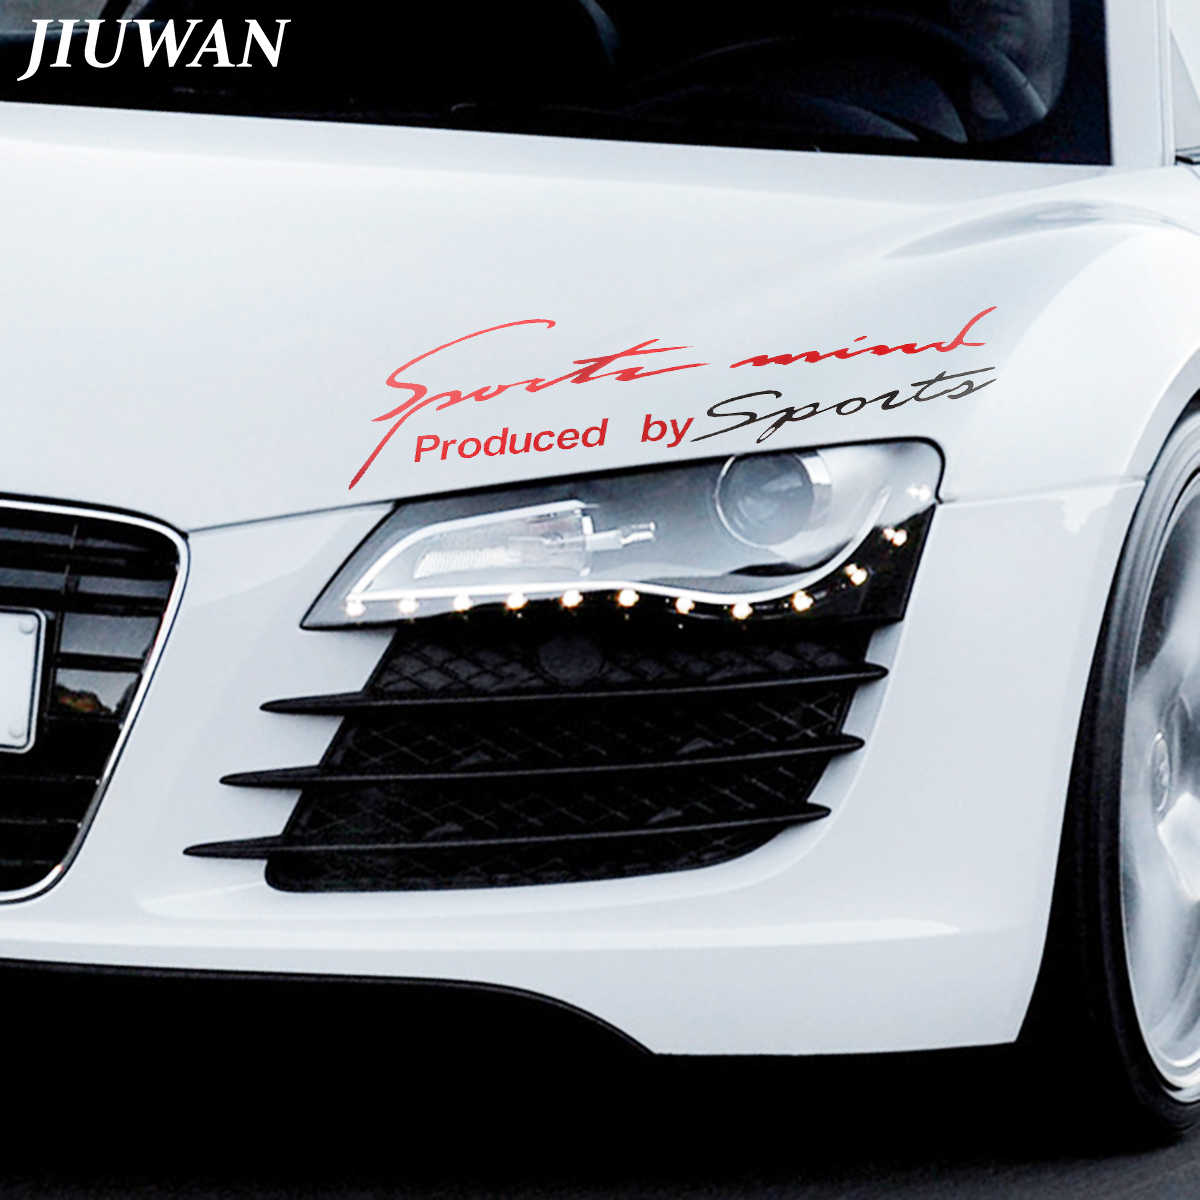 Jiuwan 3511cm car styling sport style sticker auto vinyl reflective decal custom word decoration